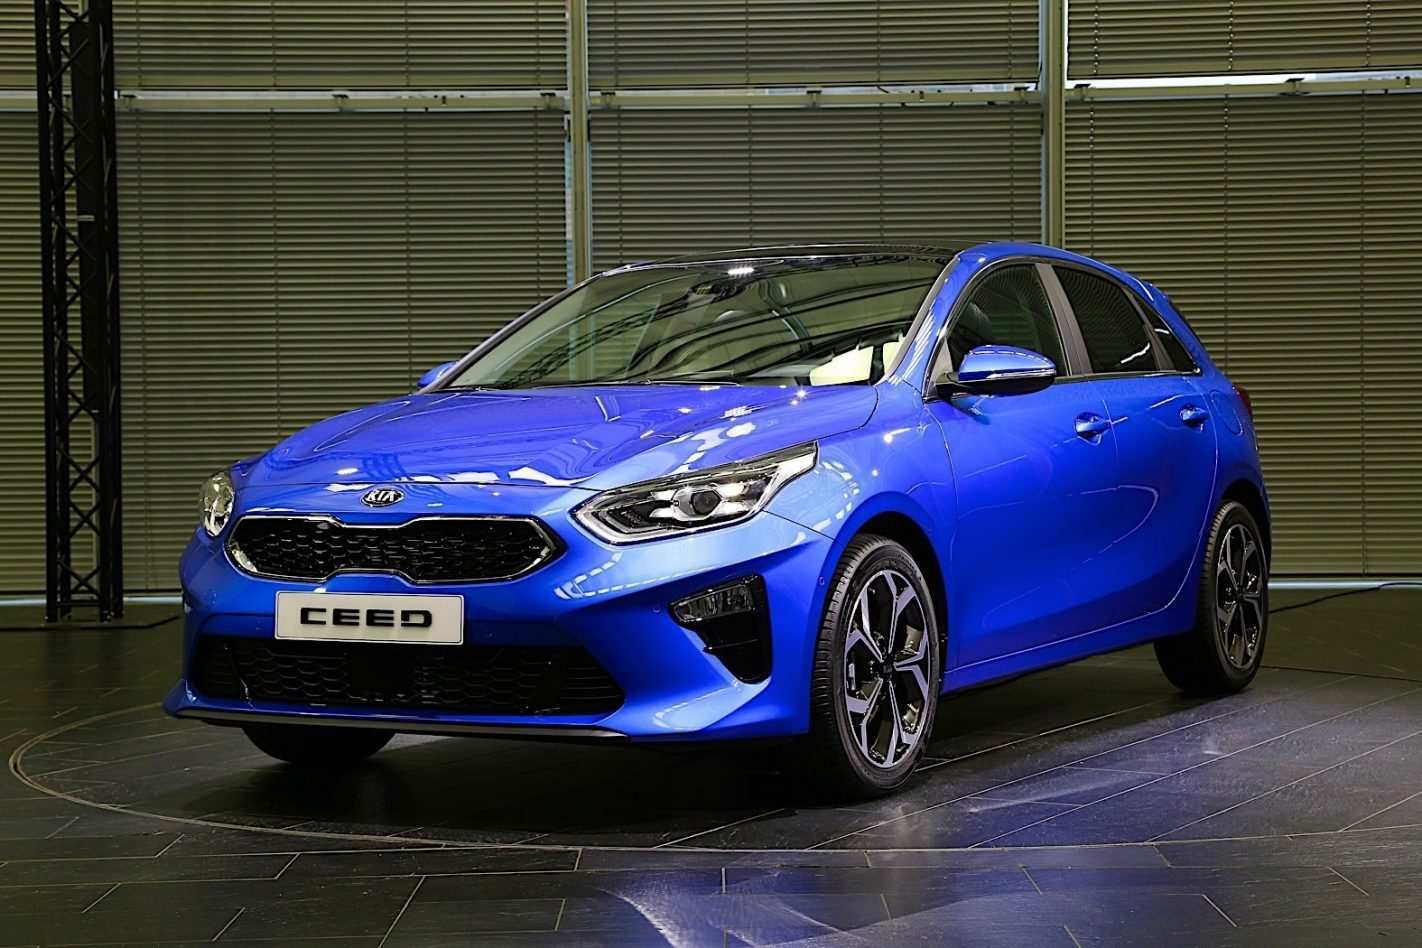 83 Gallery of Kia Gt 2019 Reviews with Kia Gt 2019